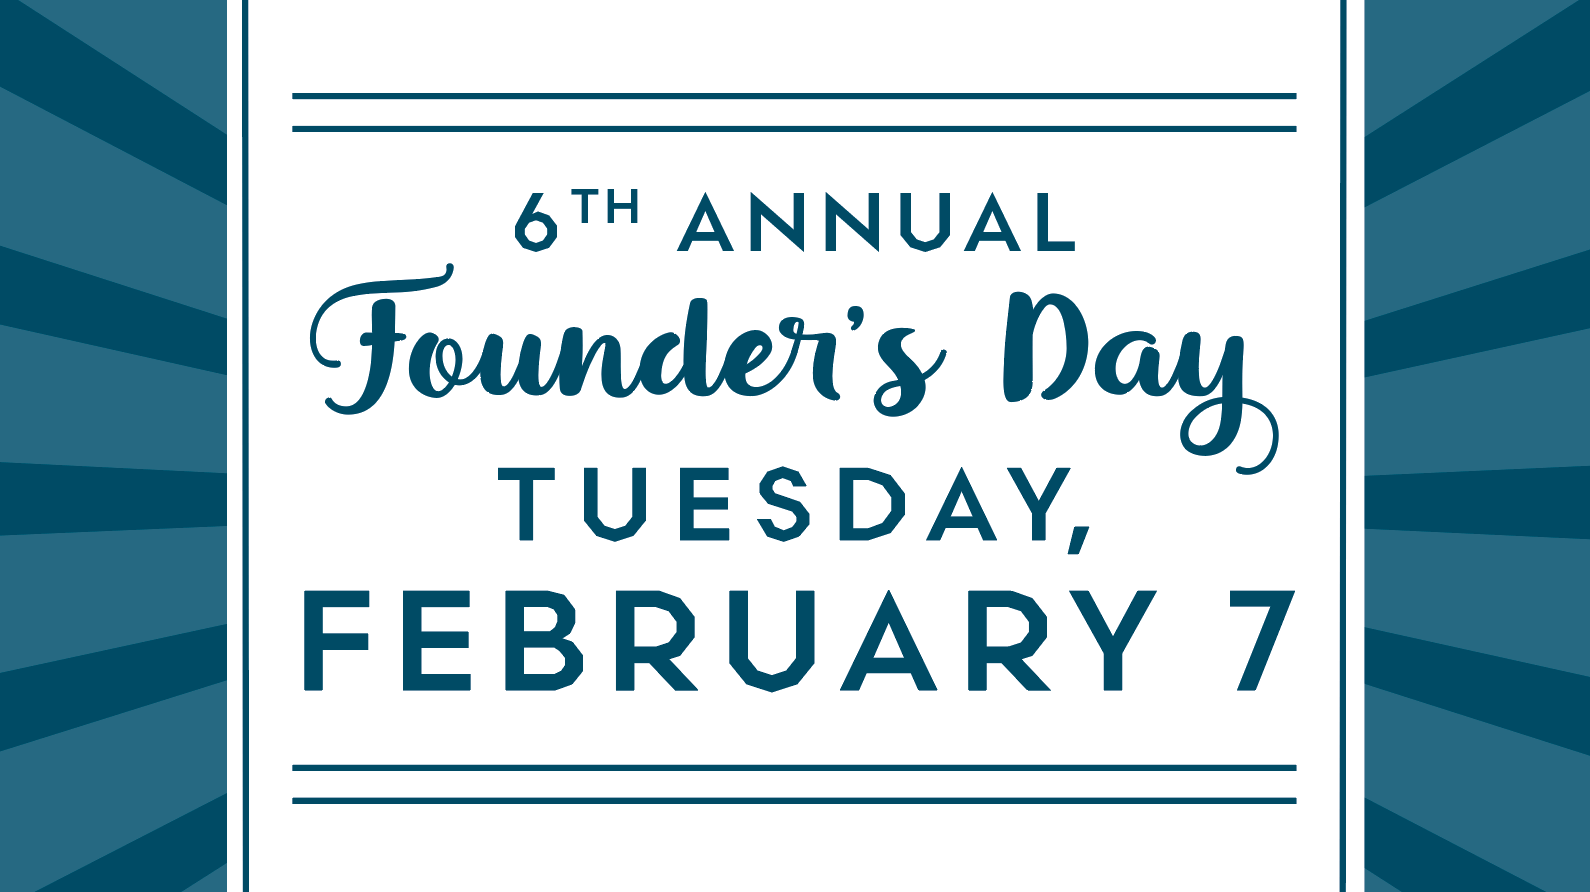 6th Annual Founder's Day